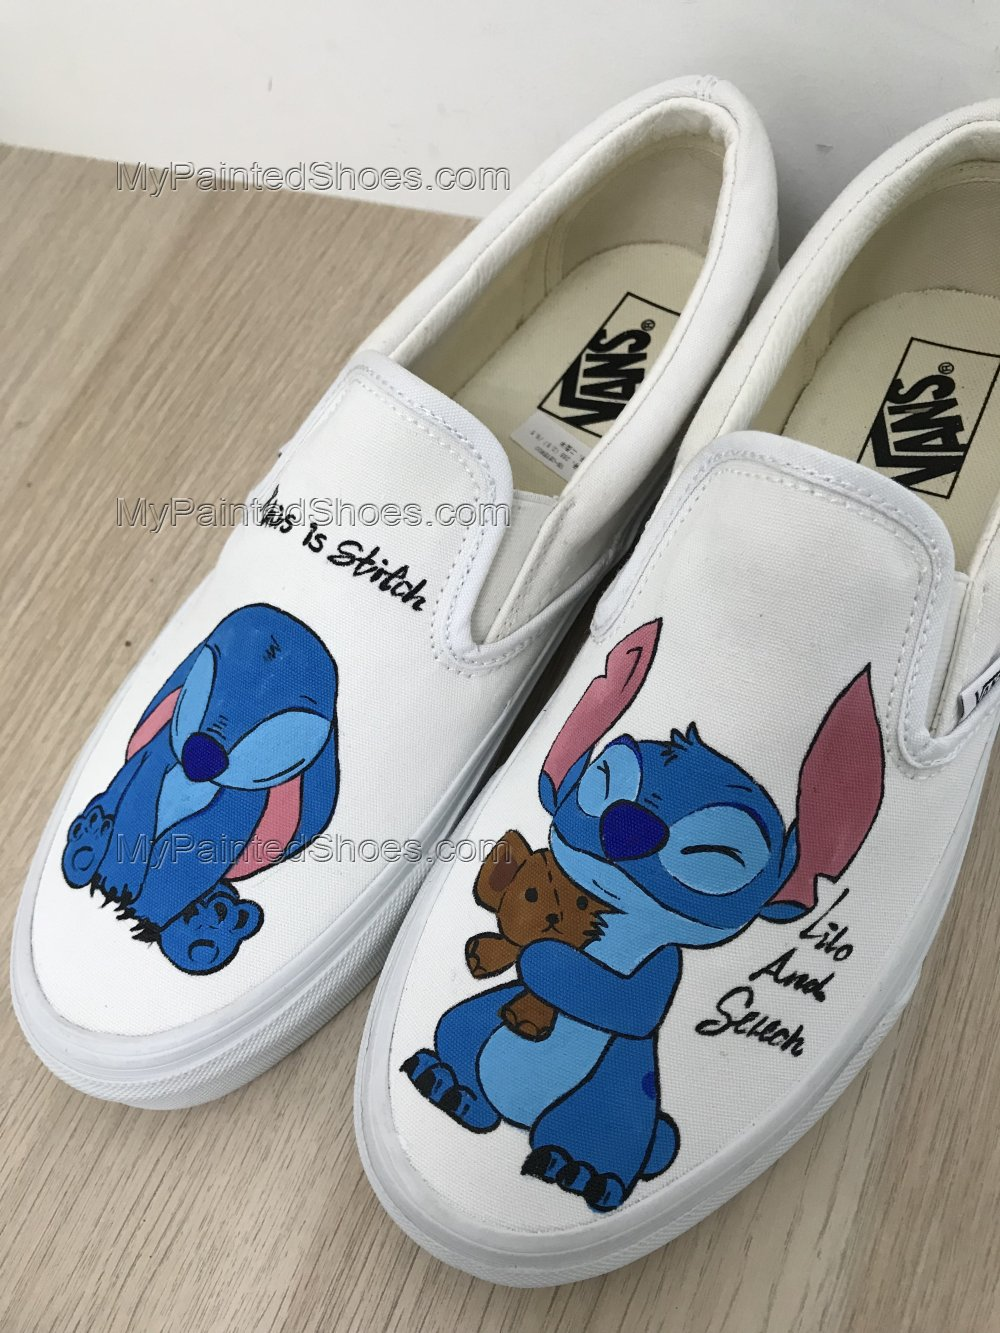 Lilo and Stitch Vans Shoes Lilo and Stitch Shoes for Women Anime-2